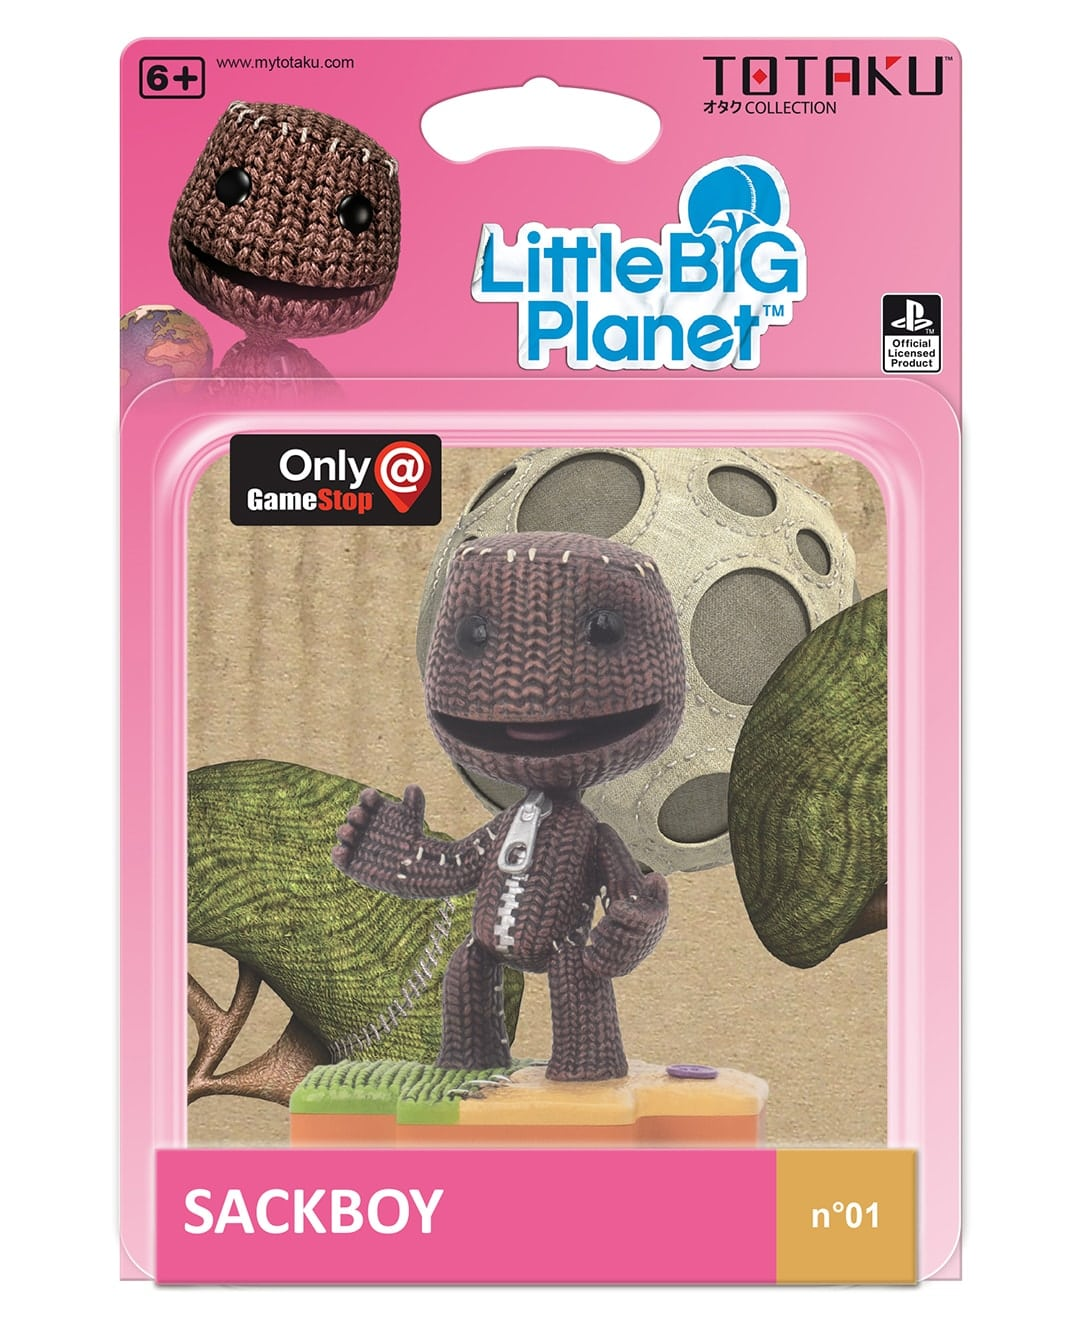 totaku sackboy box min - Totaku Collection - zestaw figurek z bohaterami PlayStation